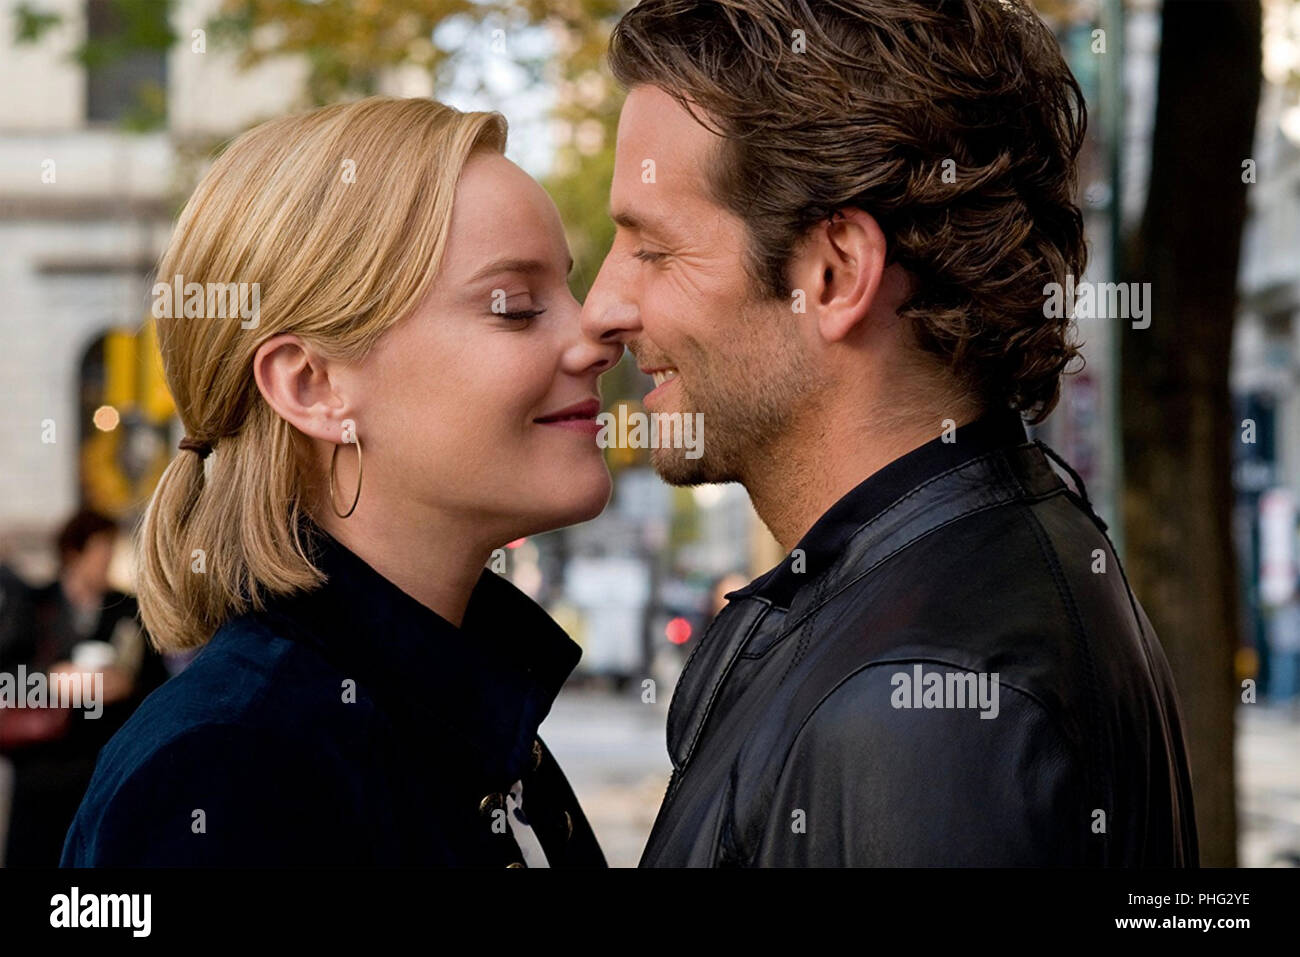 LIMITLESS 2011Relativity Media film with Bradley Cooper and Abbie Cornish - Stock Image